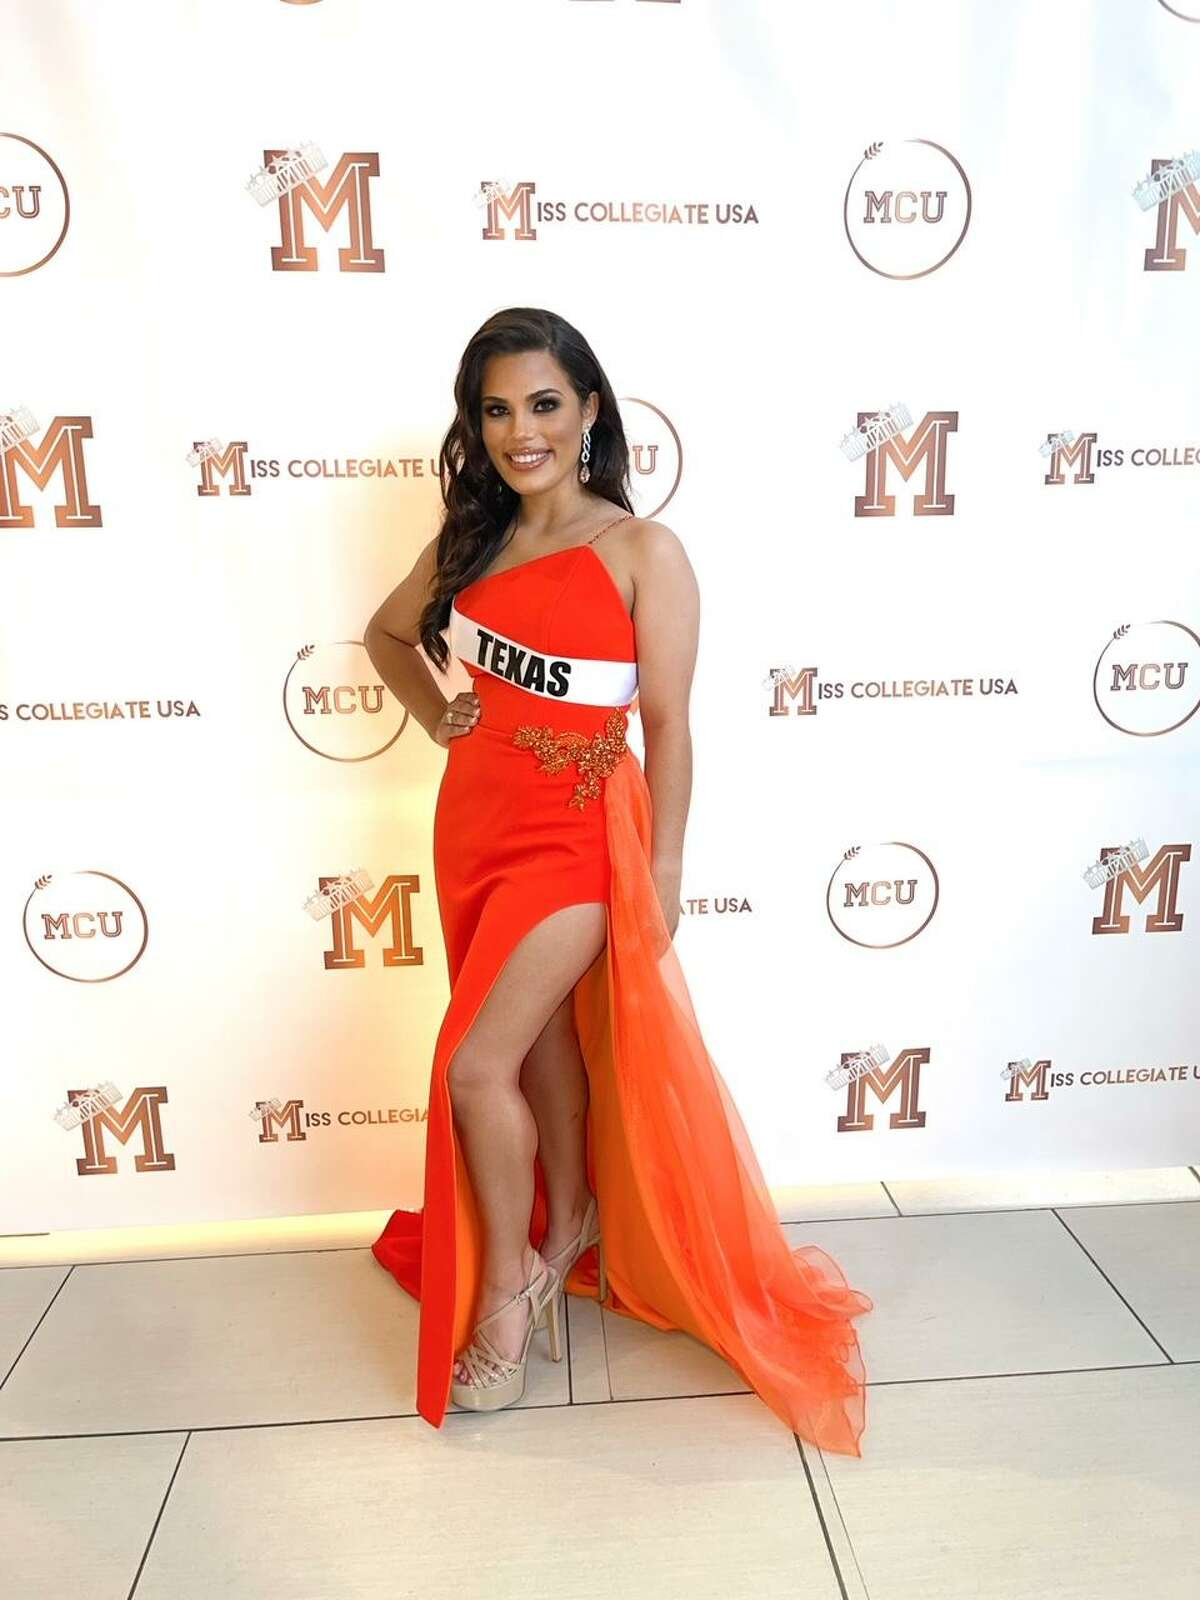 Hall poses in an evening gown during the 2021 Miss Collegiate USA pageant.